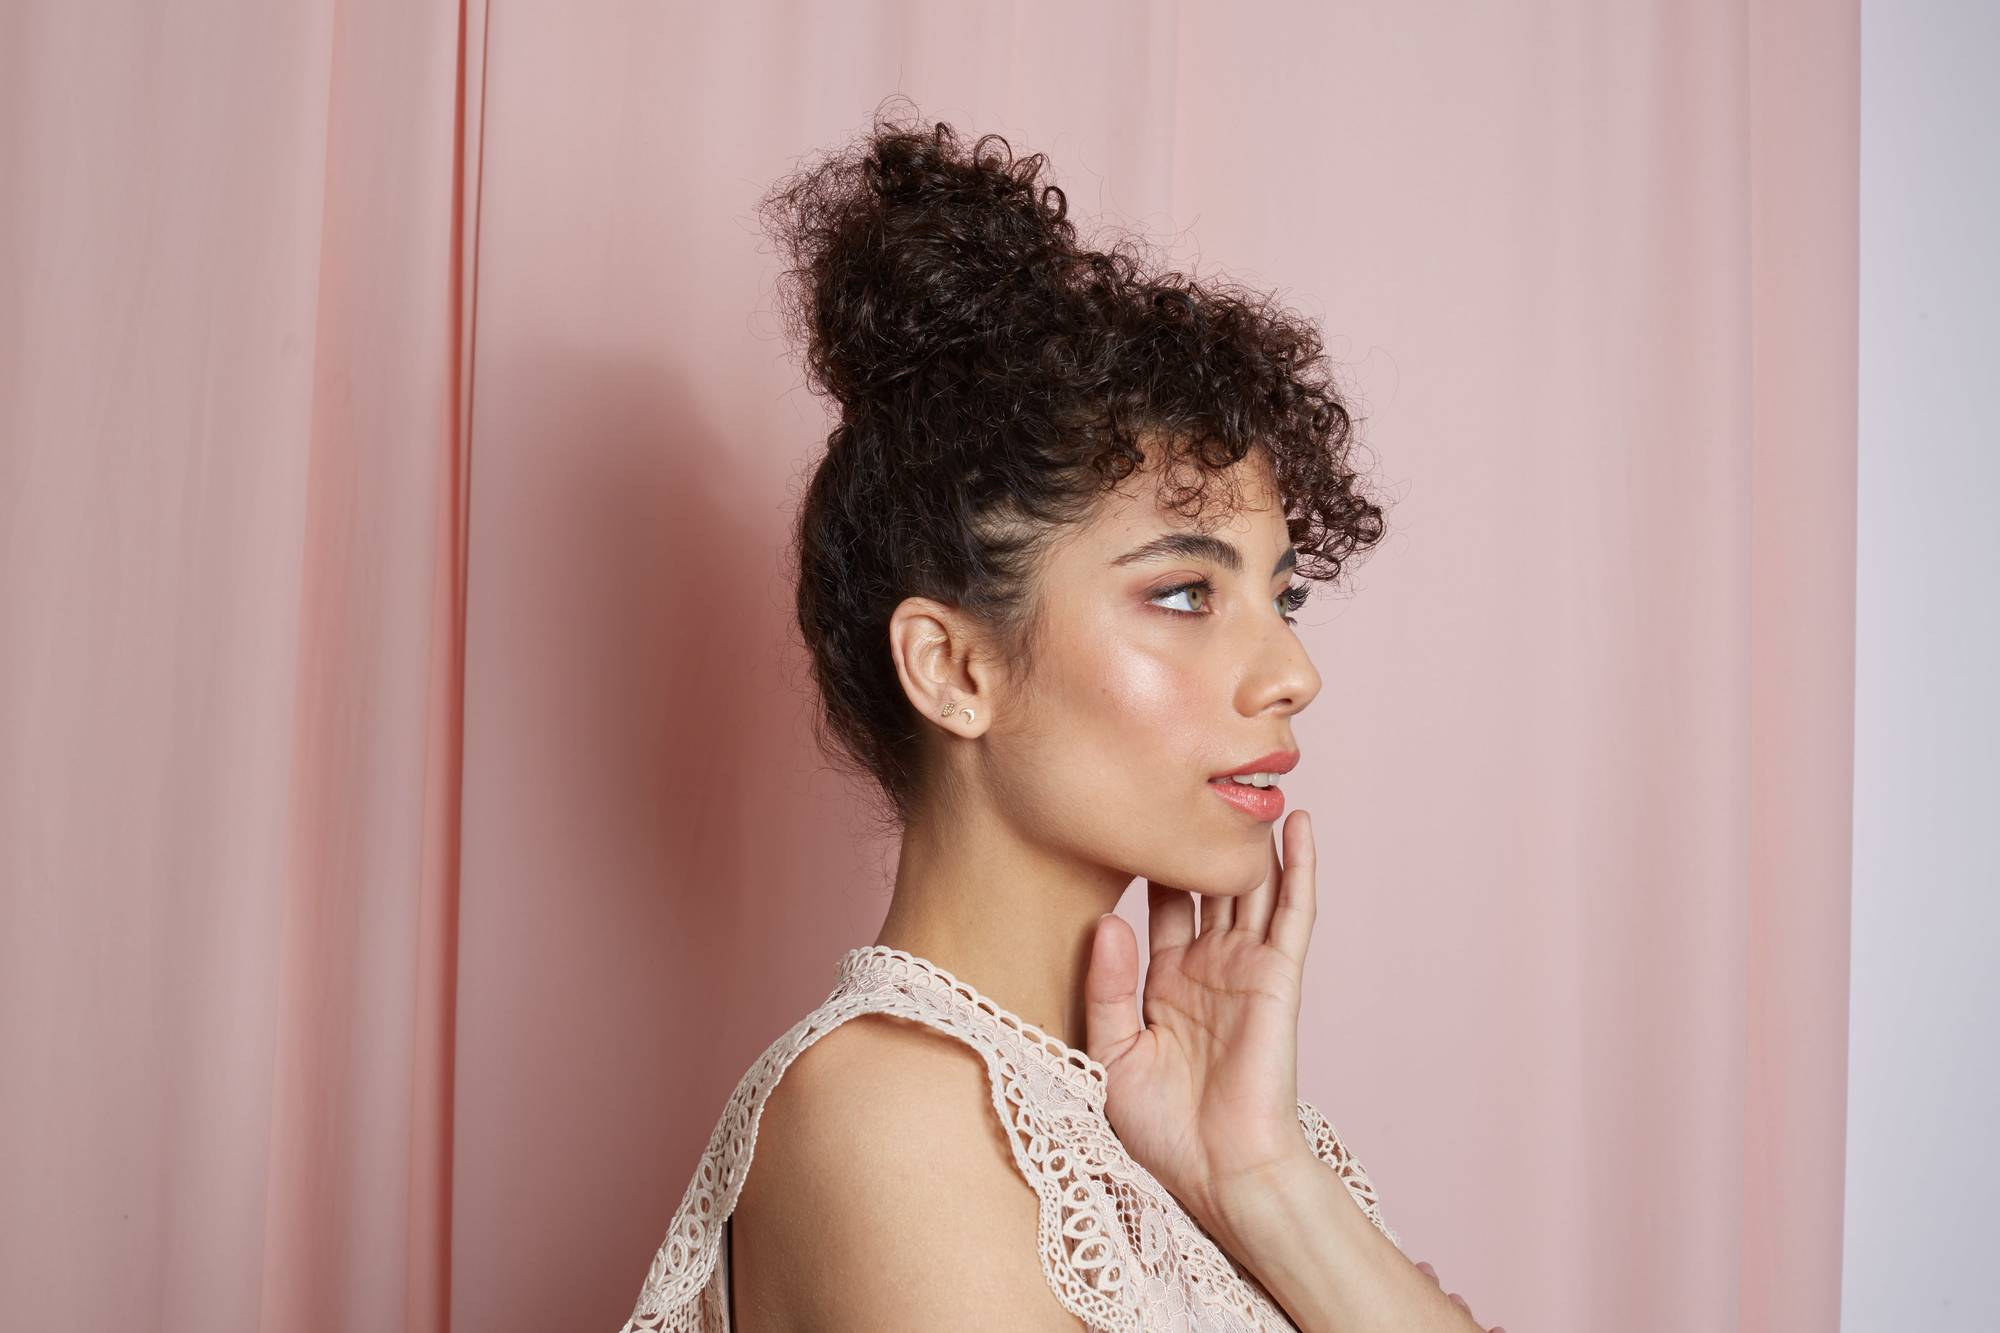 naturally curly brown hair in pineapple updo